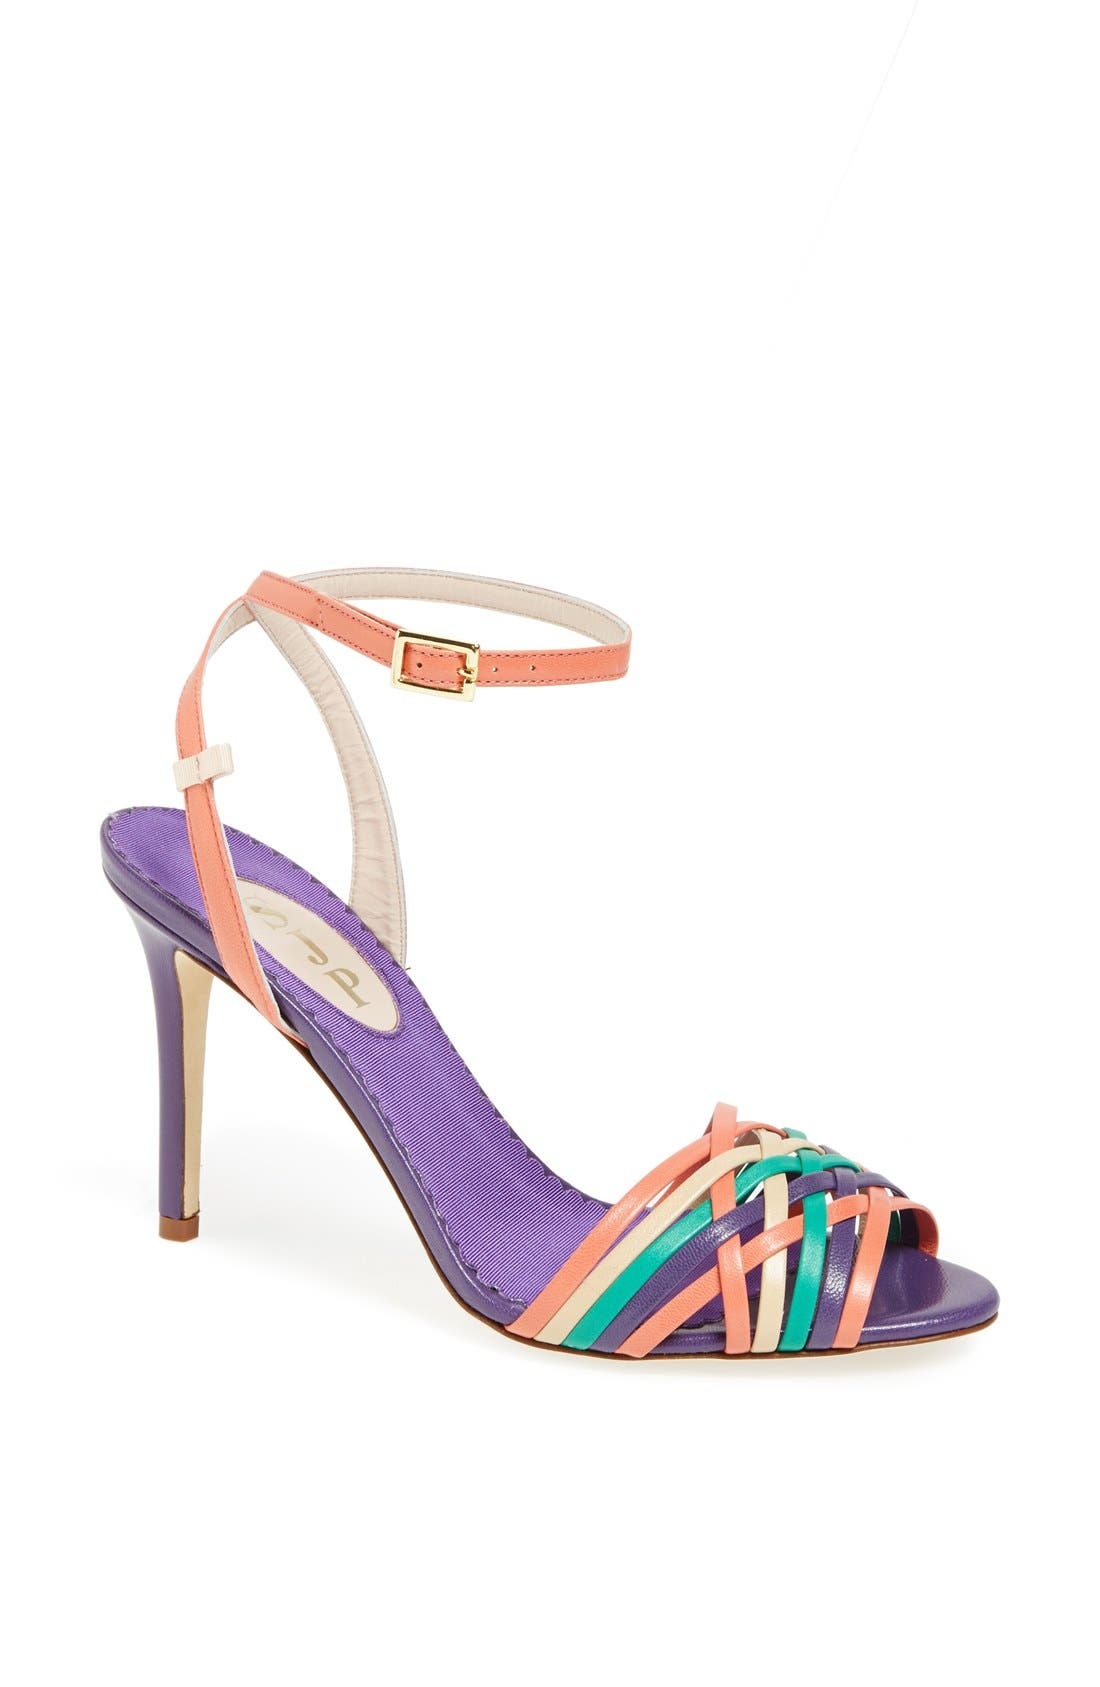 Alternate Image 1 Selected - SJP 'Maud' Sandal (Nordstrom Exclusive)